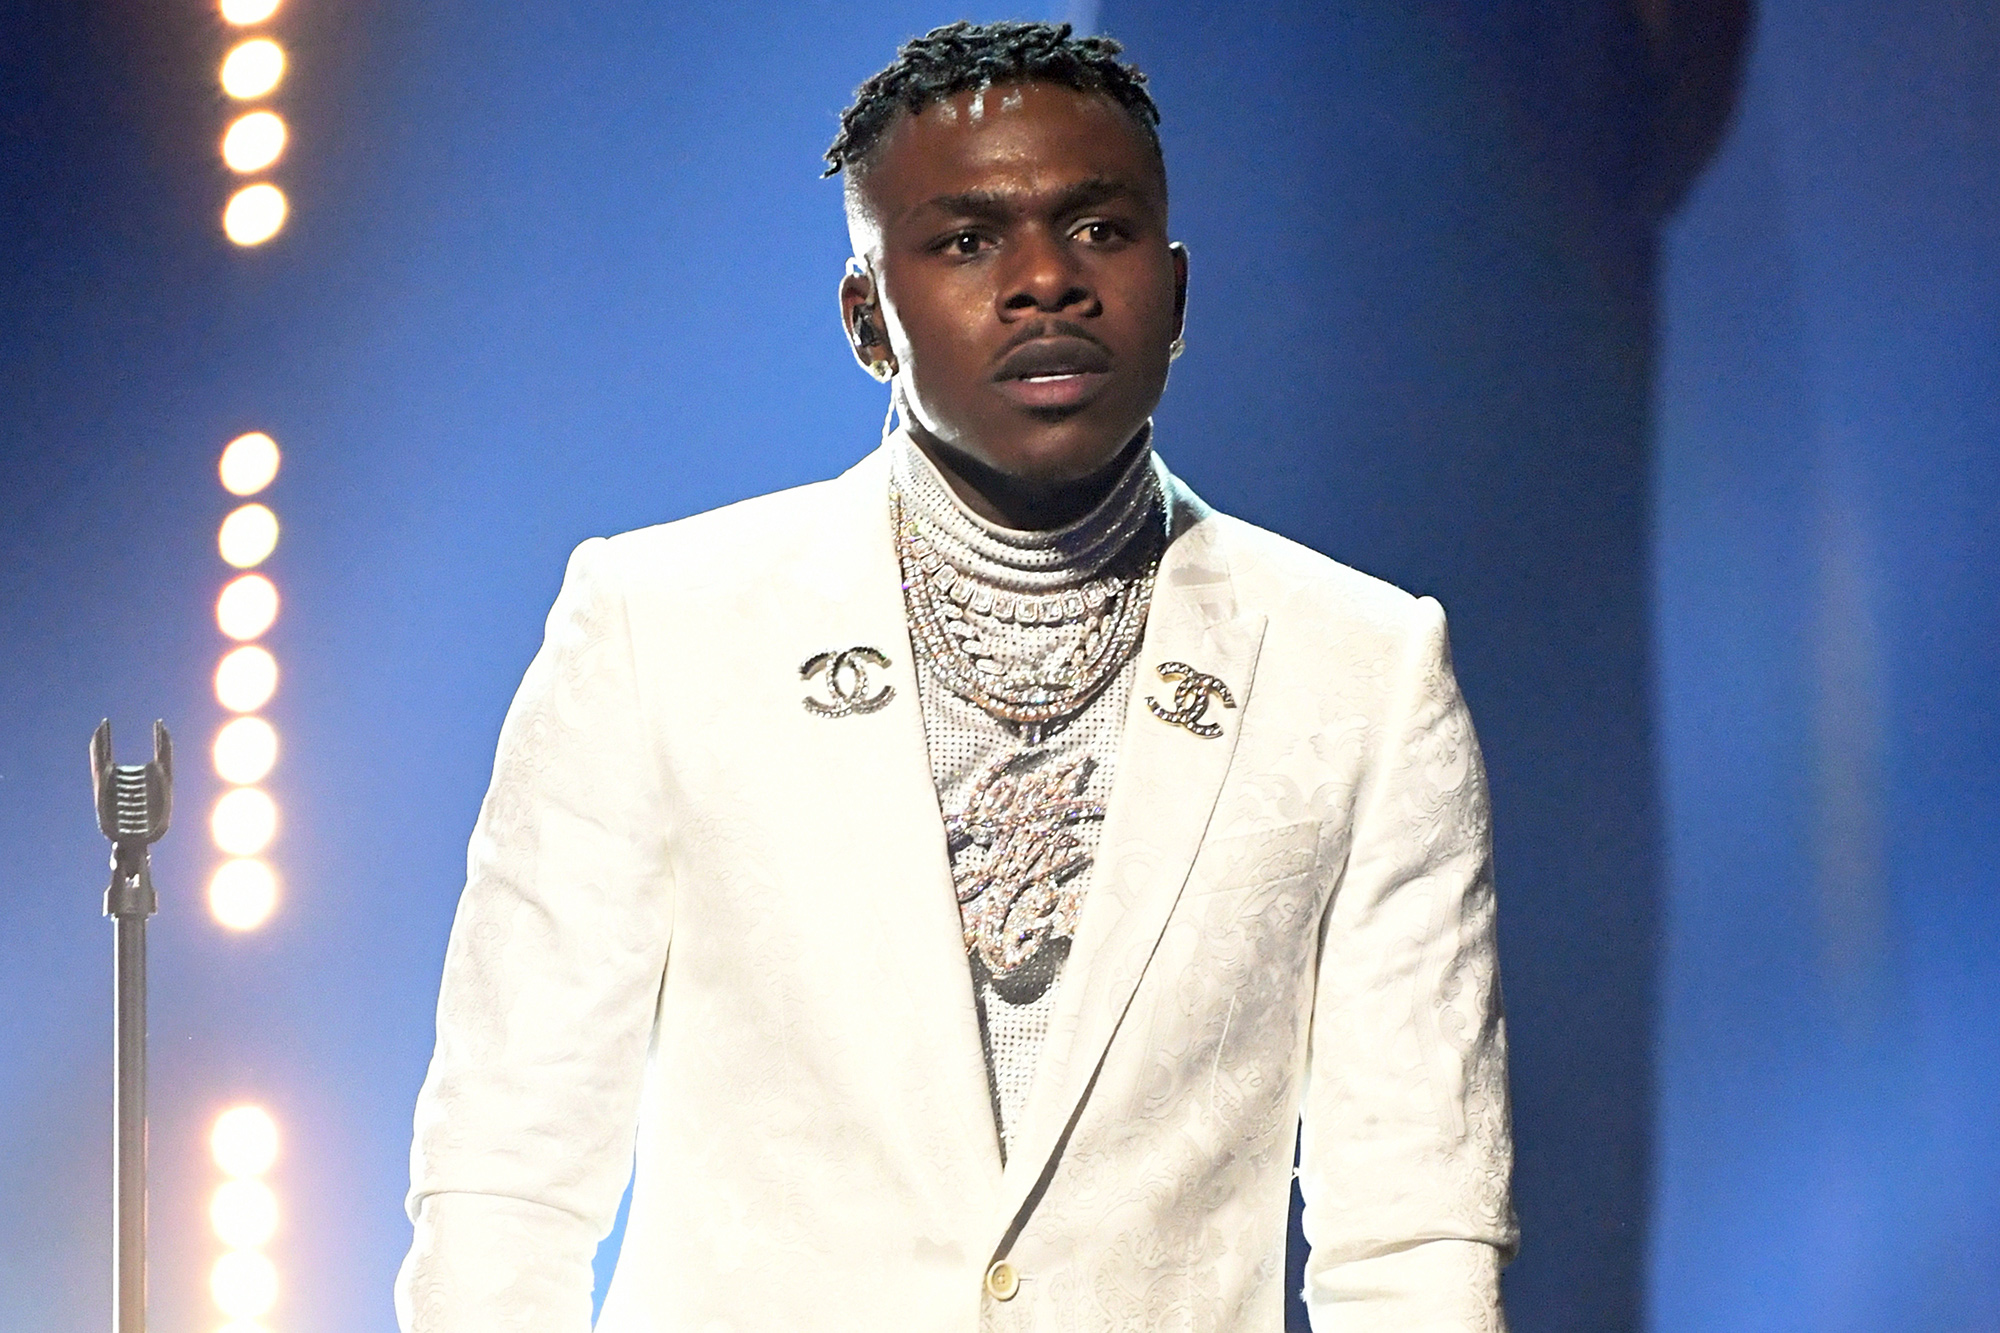 DaBaby performs onstage during the 63rd Annual GRAMMY Awards at Los Angeles Convention Center in Los Angeles, California and broadcast on March 14, 2021.